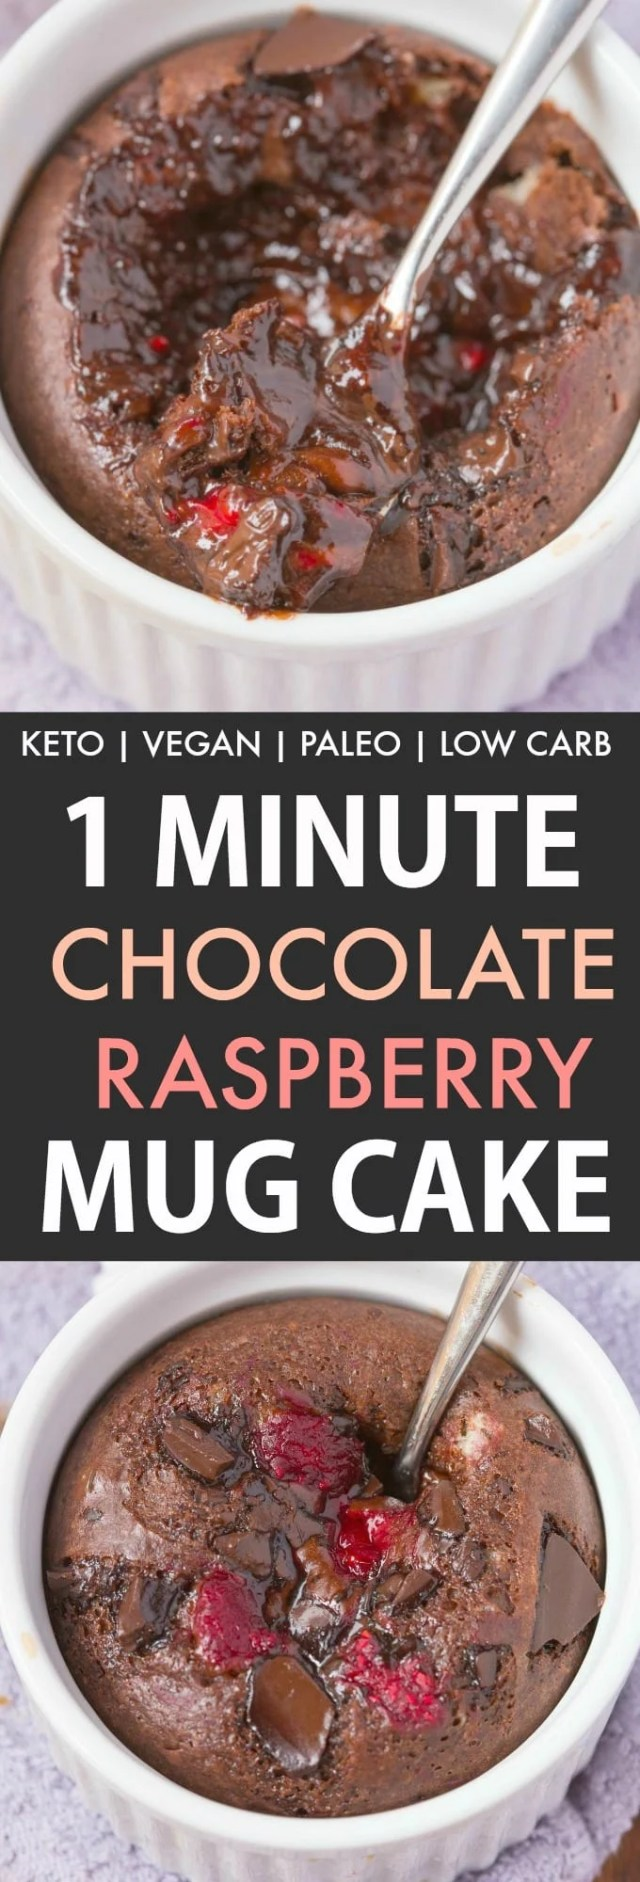 A single serve keto chocolate raspberry mug cake loaded with raspberries and chocolate chunks.